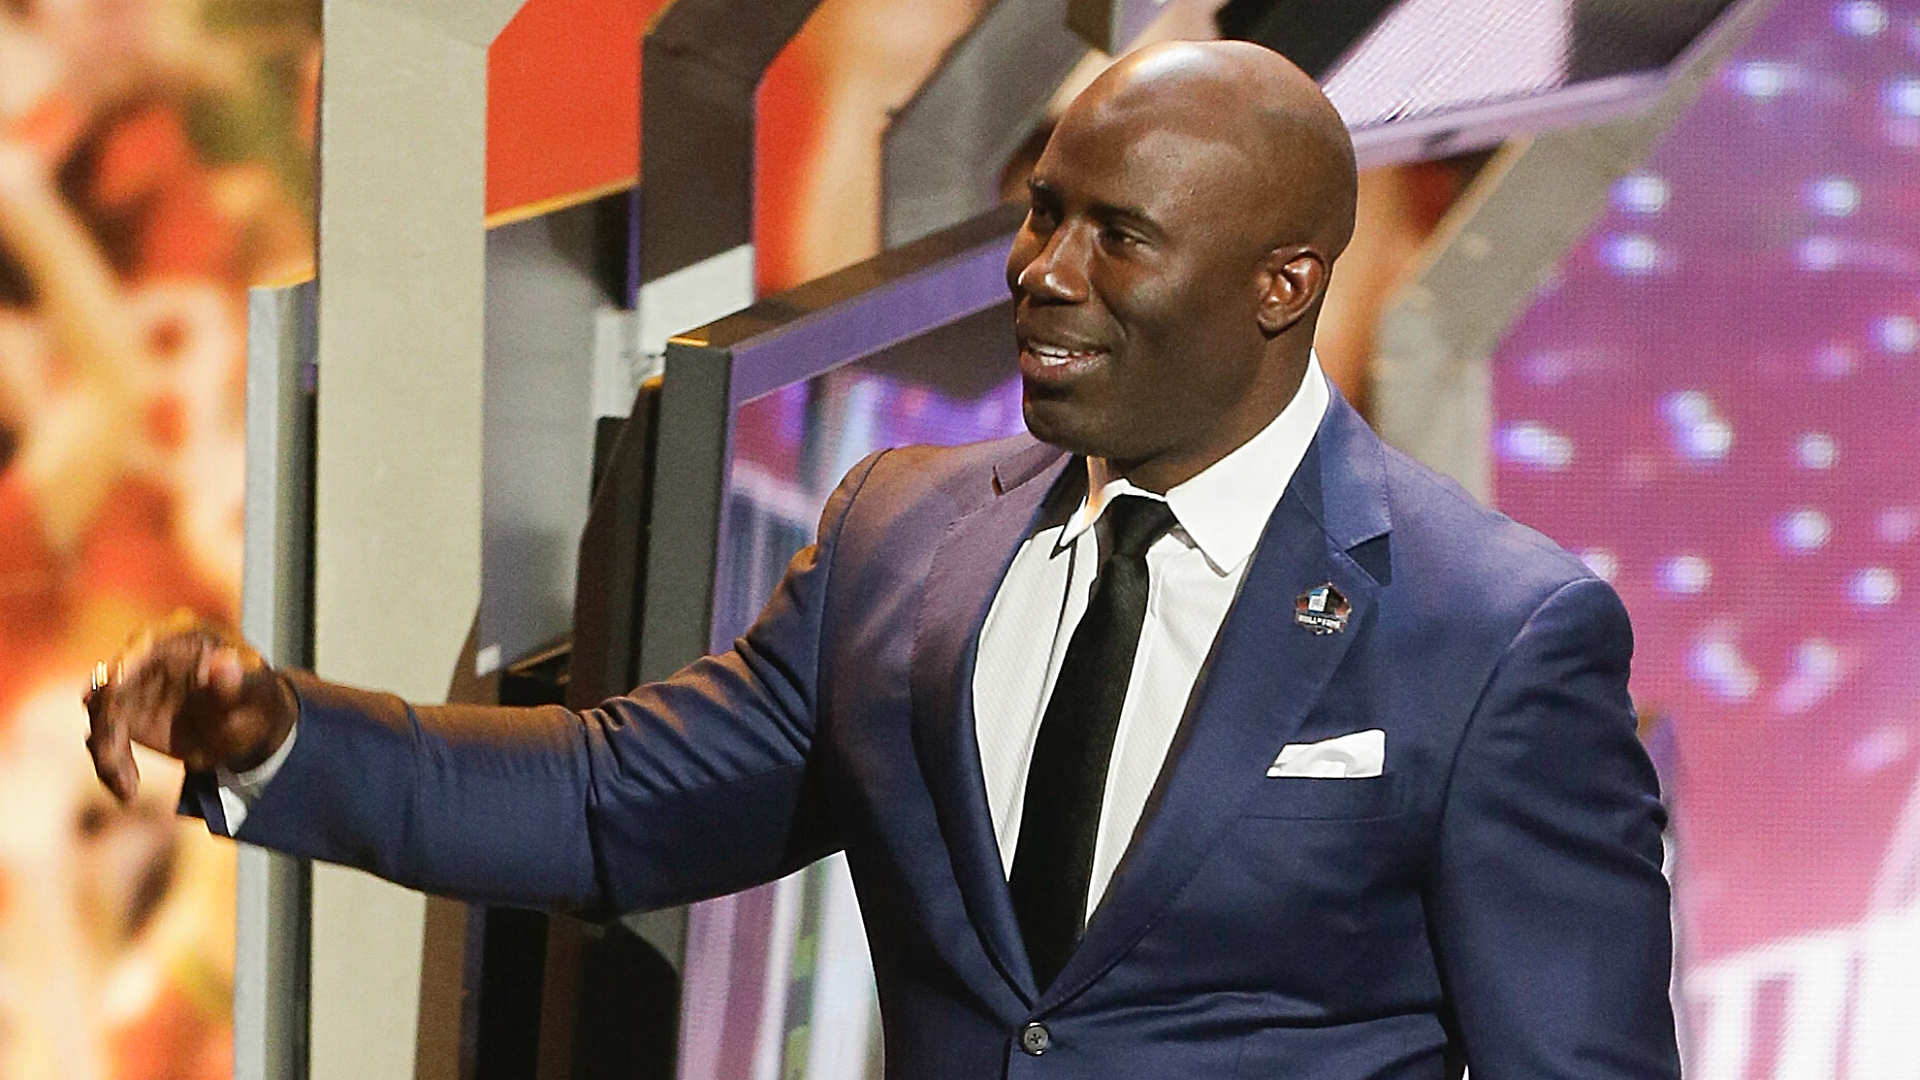 Watch Terrell Davis receive his Hall of Fame gold jacket